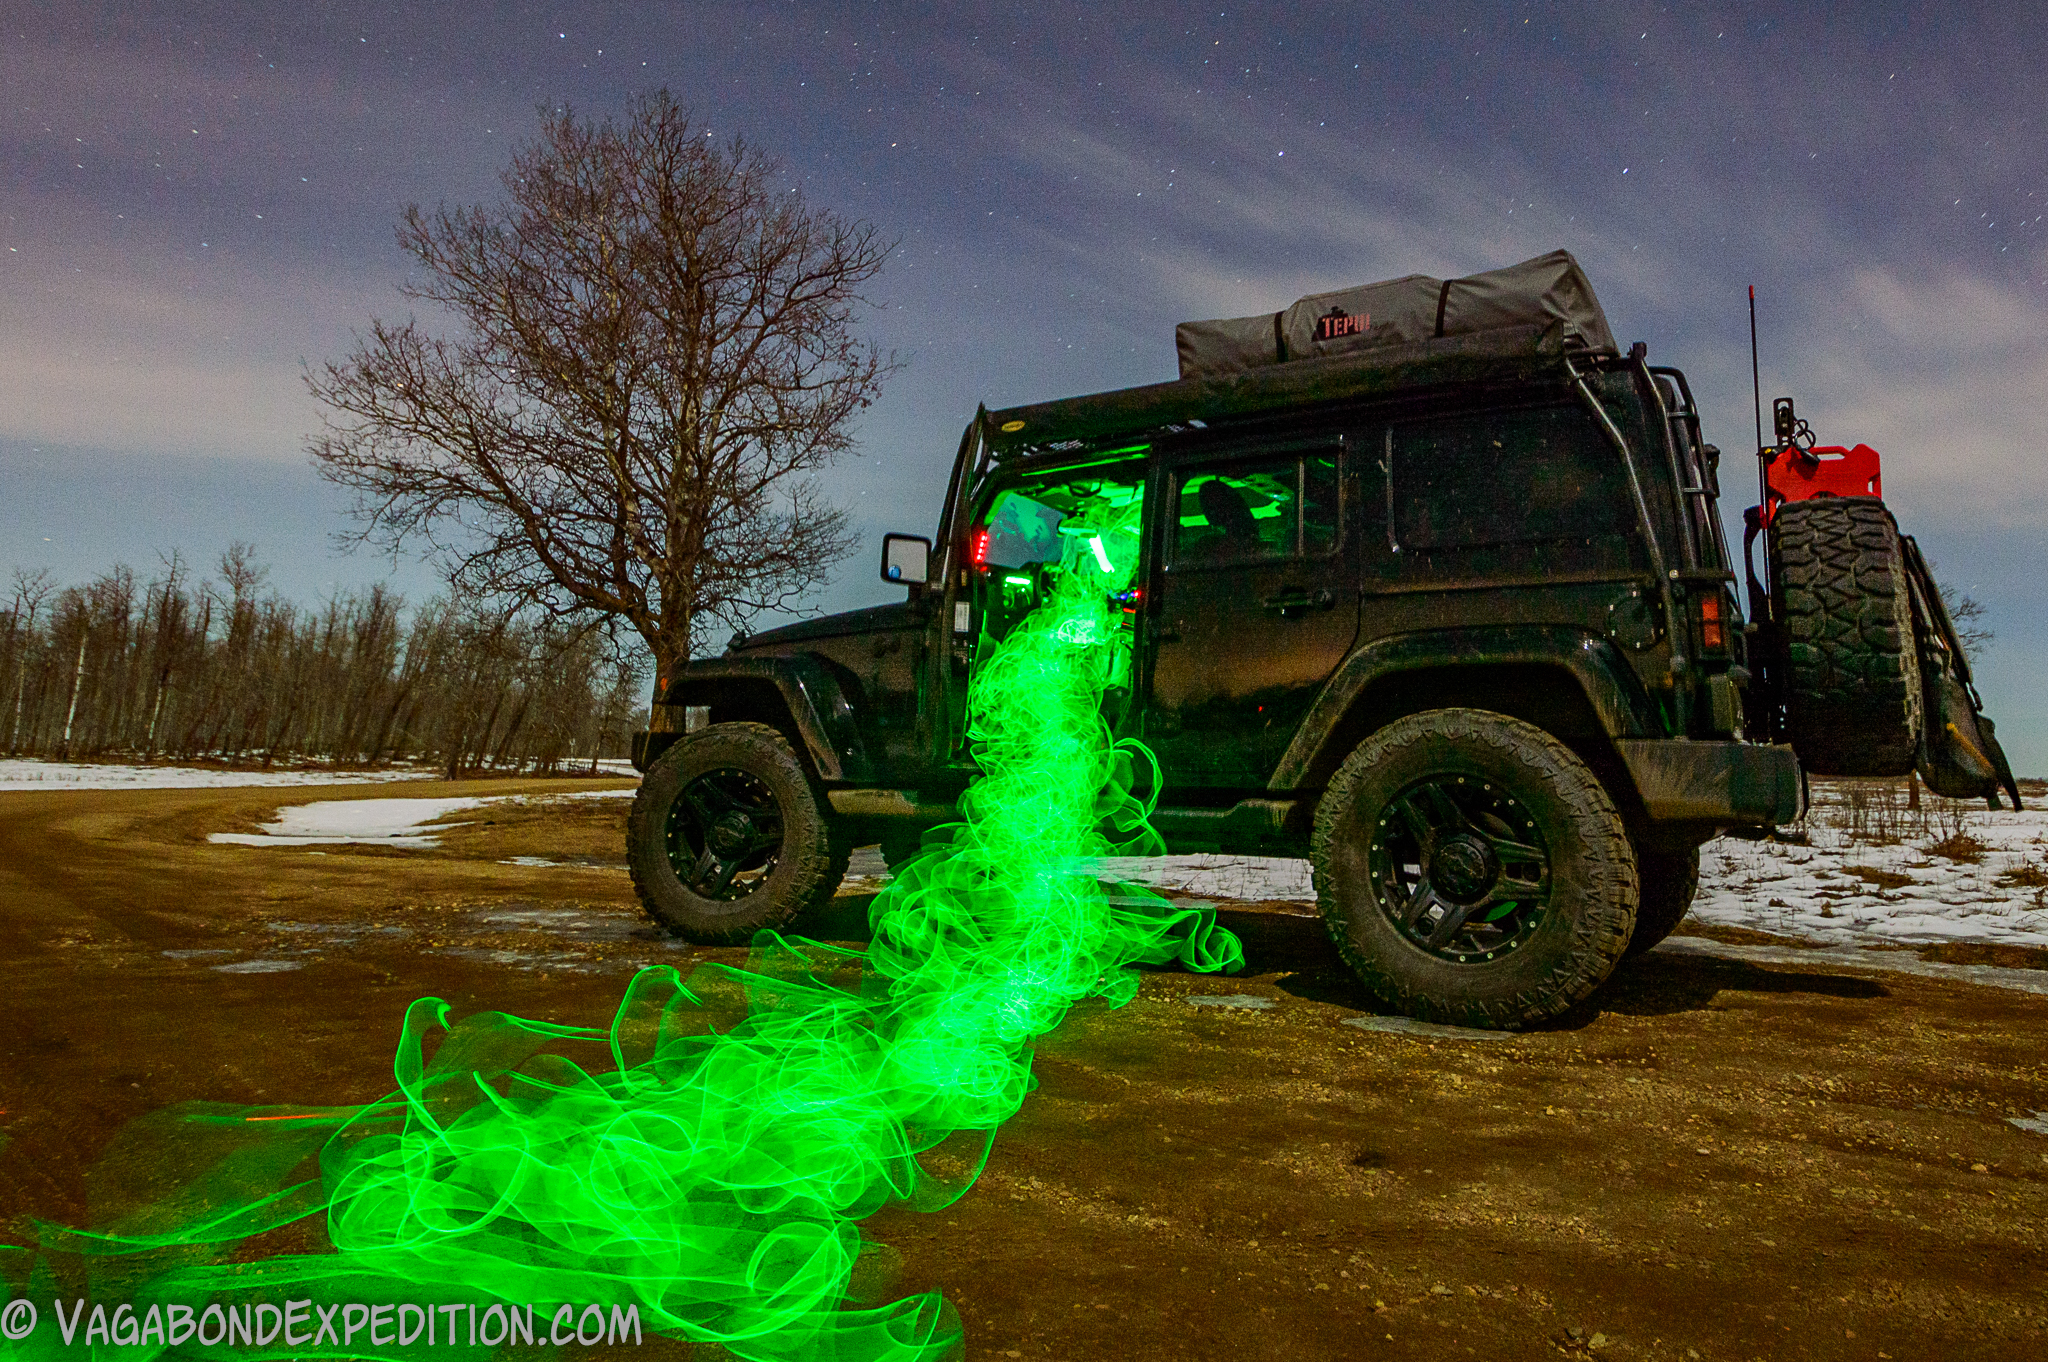 More Light Painting with the Overland Jeep